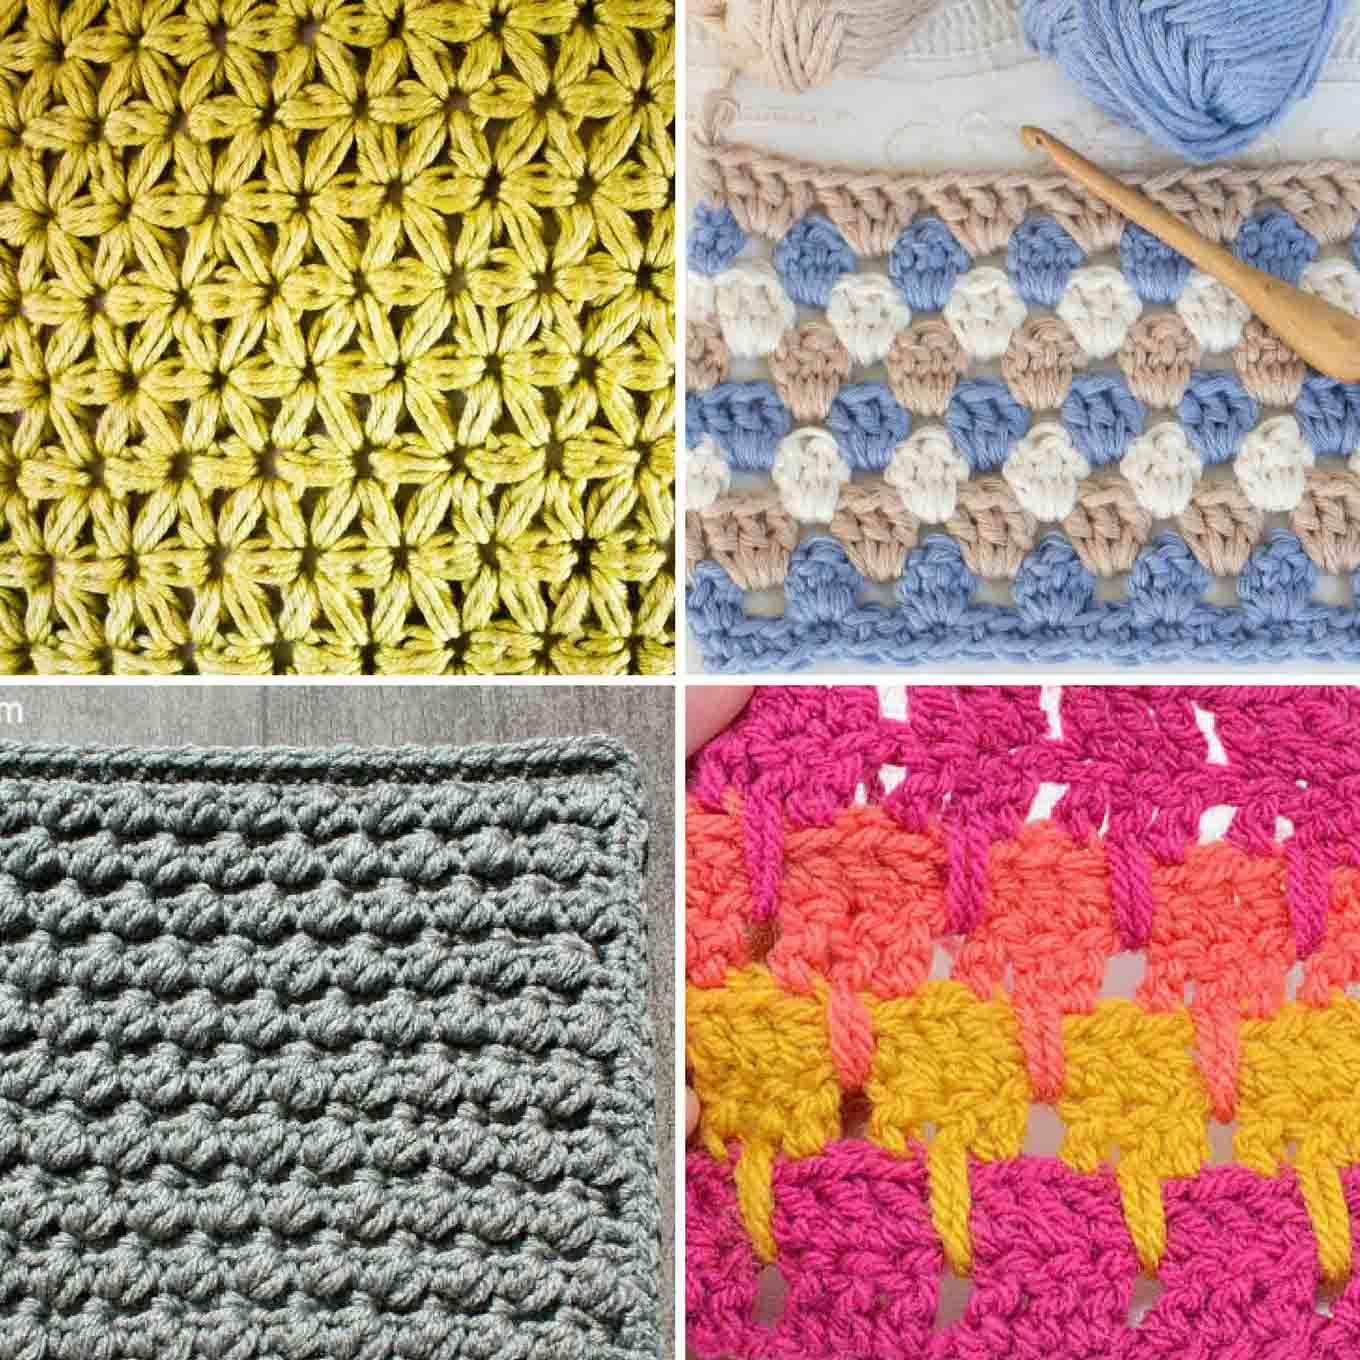 Afghan Blanket Crochet Pattern Inspirational 25 Crochet Stitches for Blankets and Afghans Make & Do Crew Of Incredible 43 Pictures Afghan Blanket Crochet Pattern